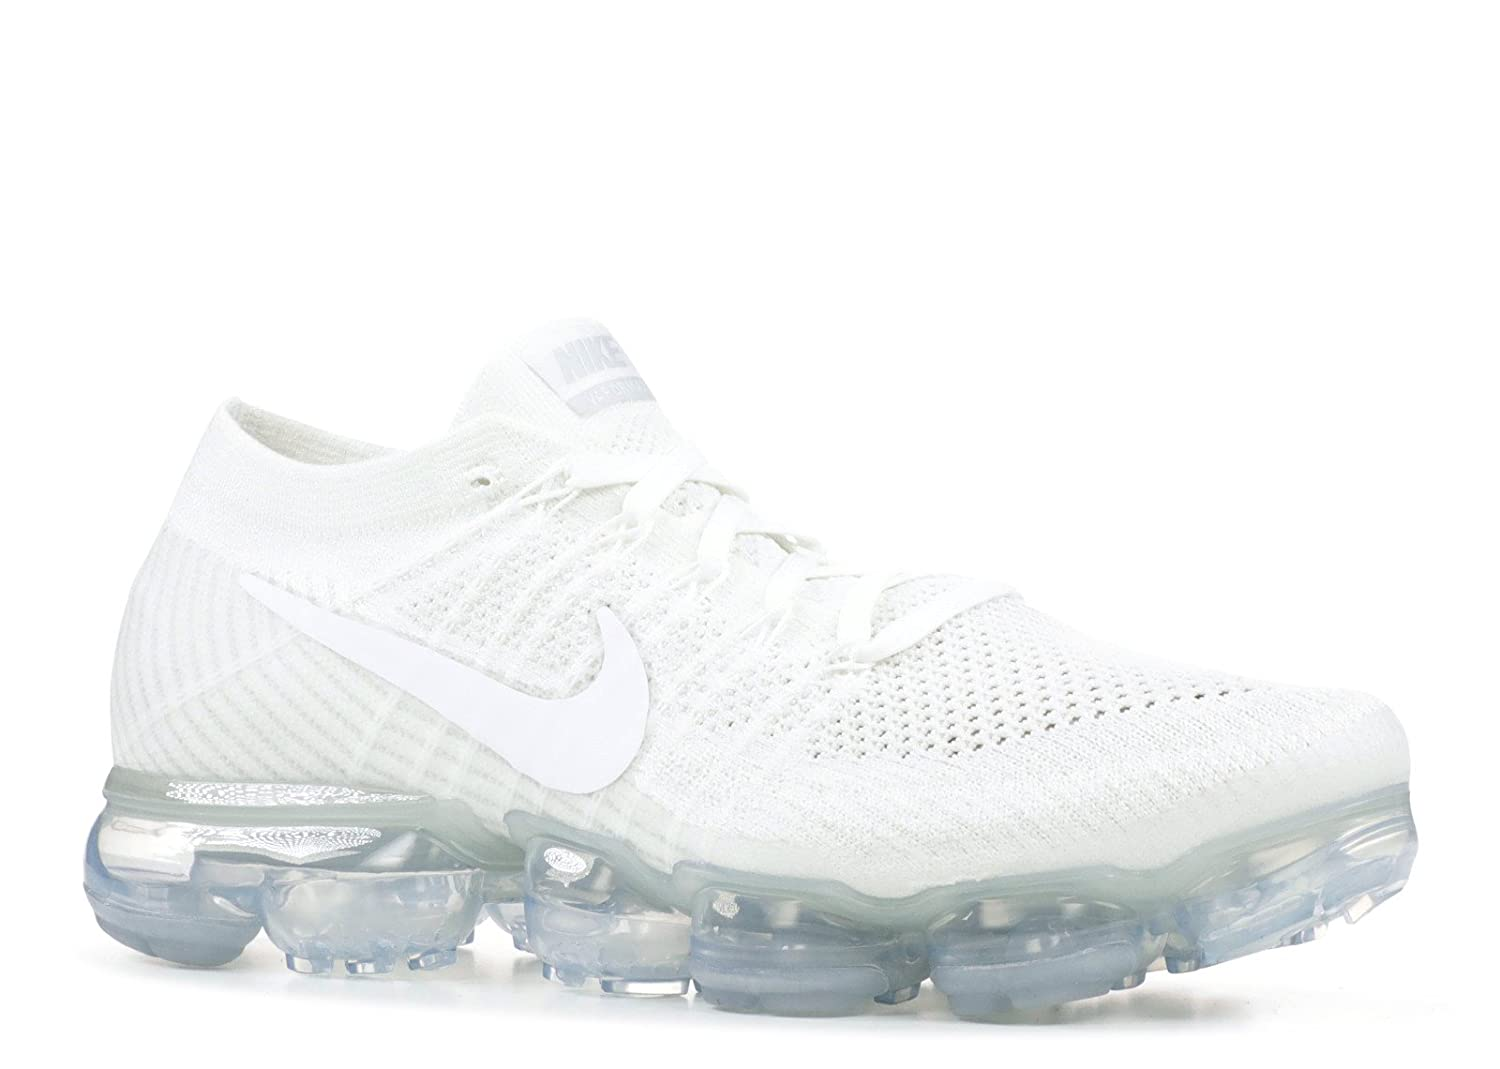 30c77fcca902 Nike Air Vapormax Flyknit  Triple White  - 849558-100 -  Amazon.co.uk  Shoes    Bags